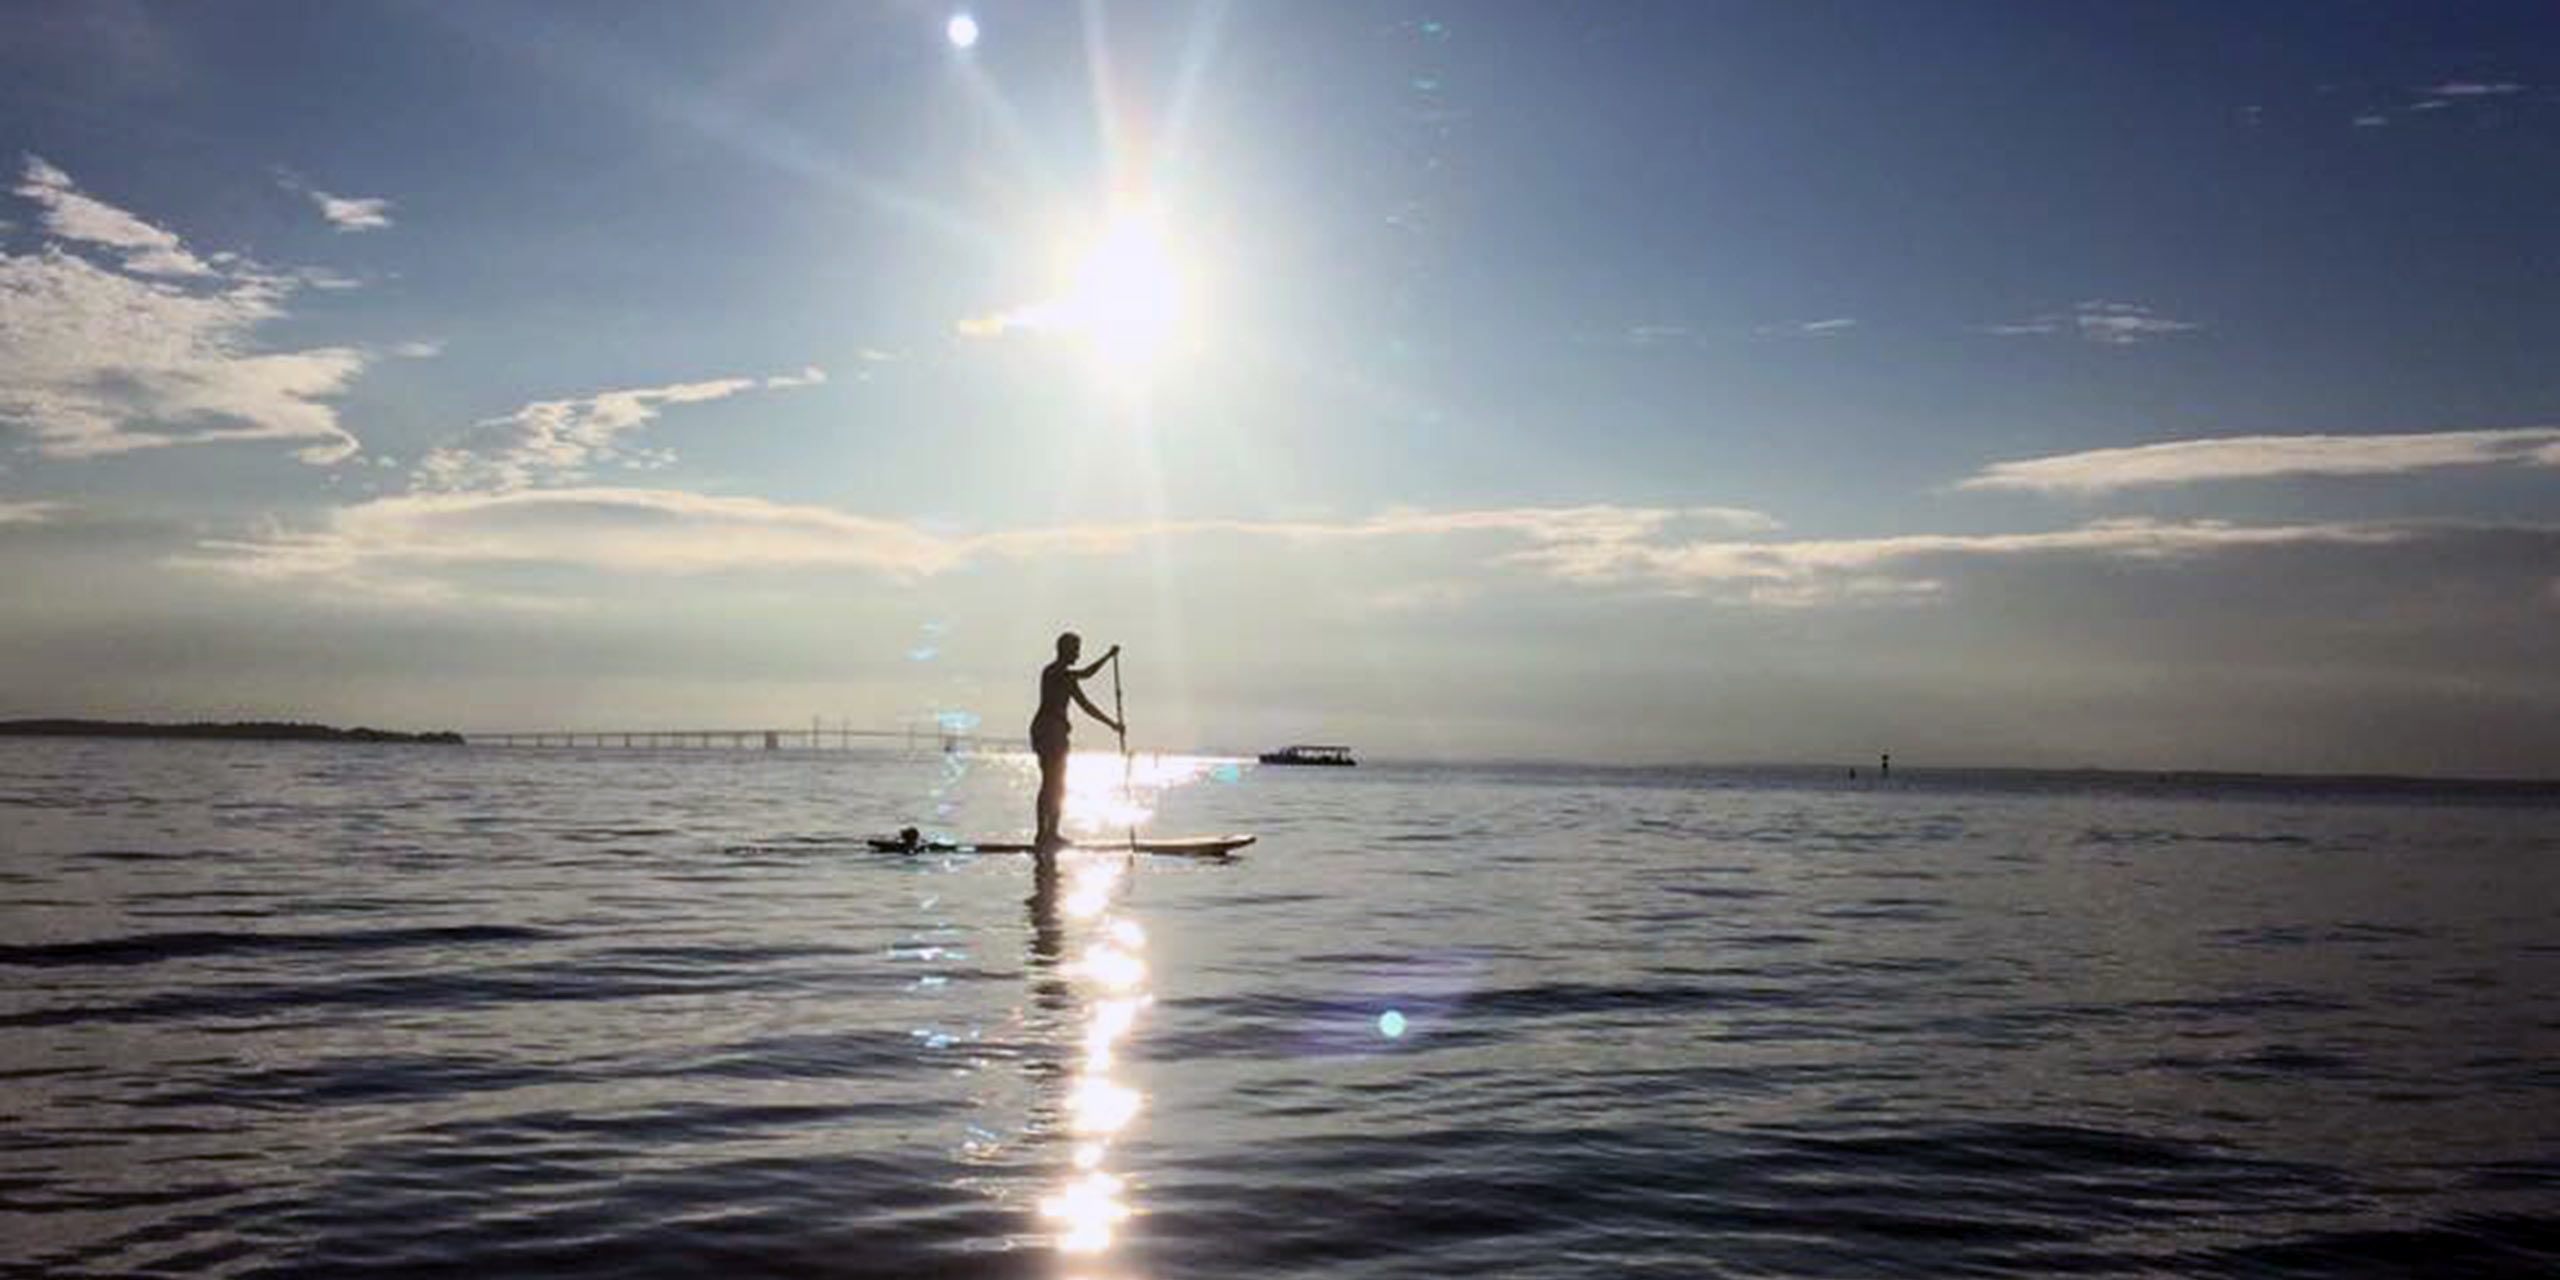 paddleboarding on water